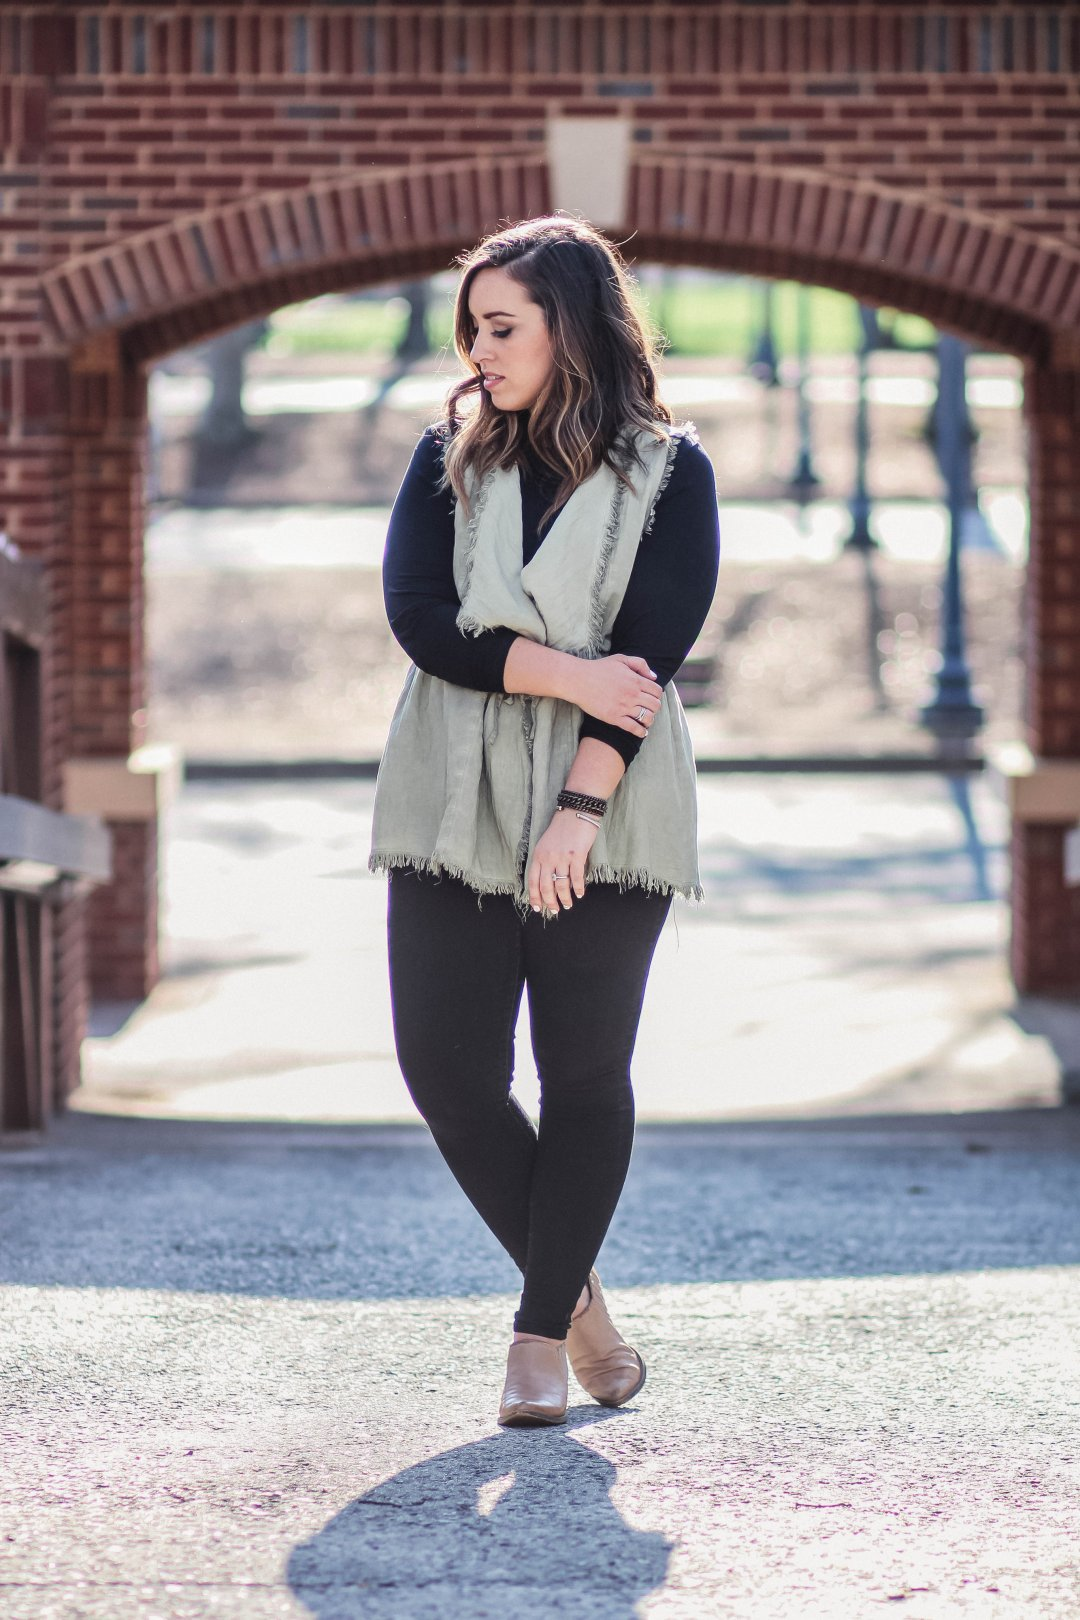 Boho Destroyed Vest | Just Peachy Blog